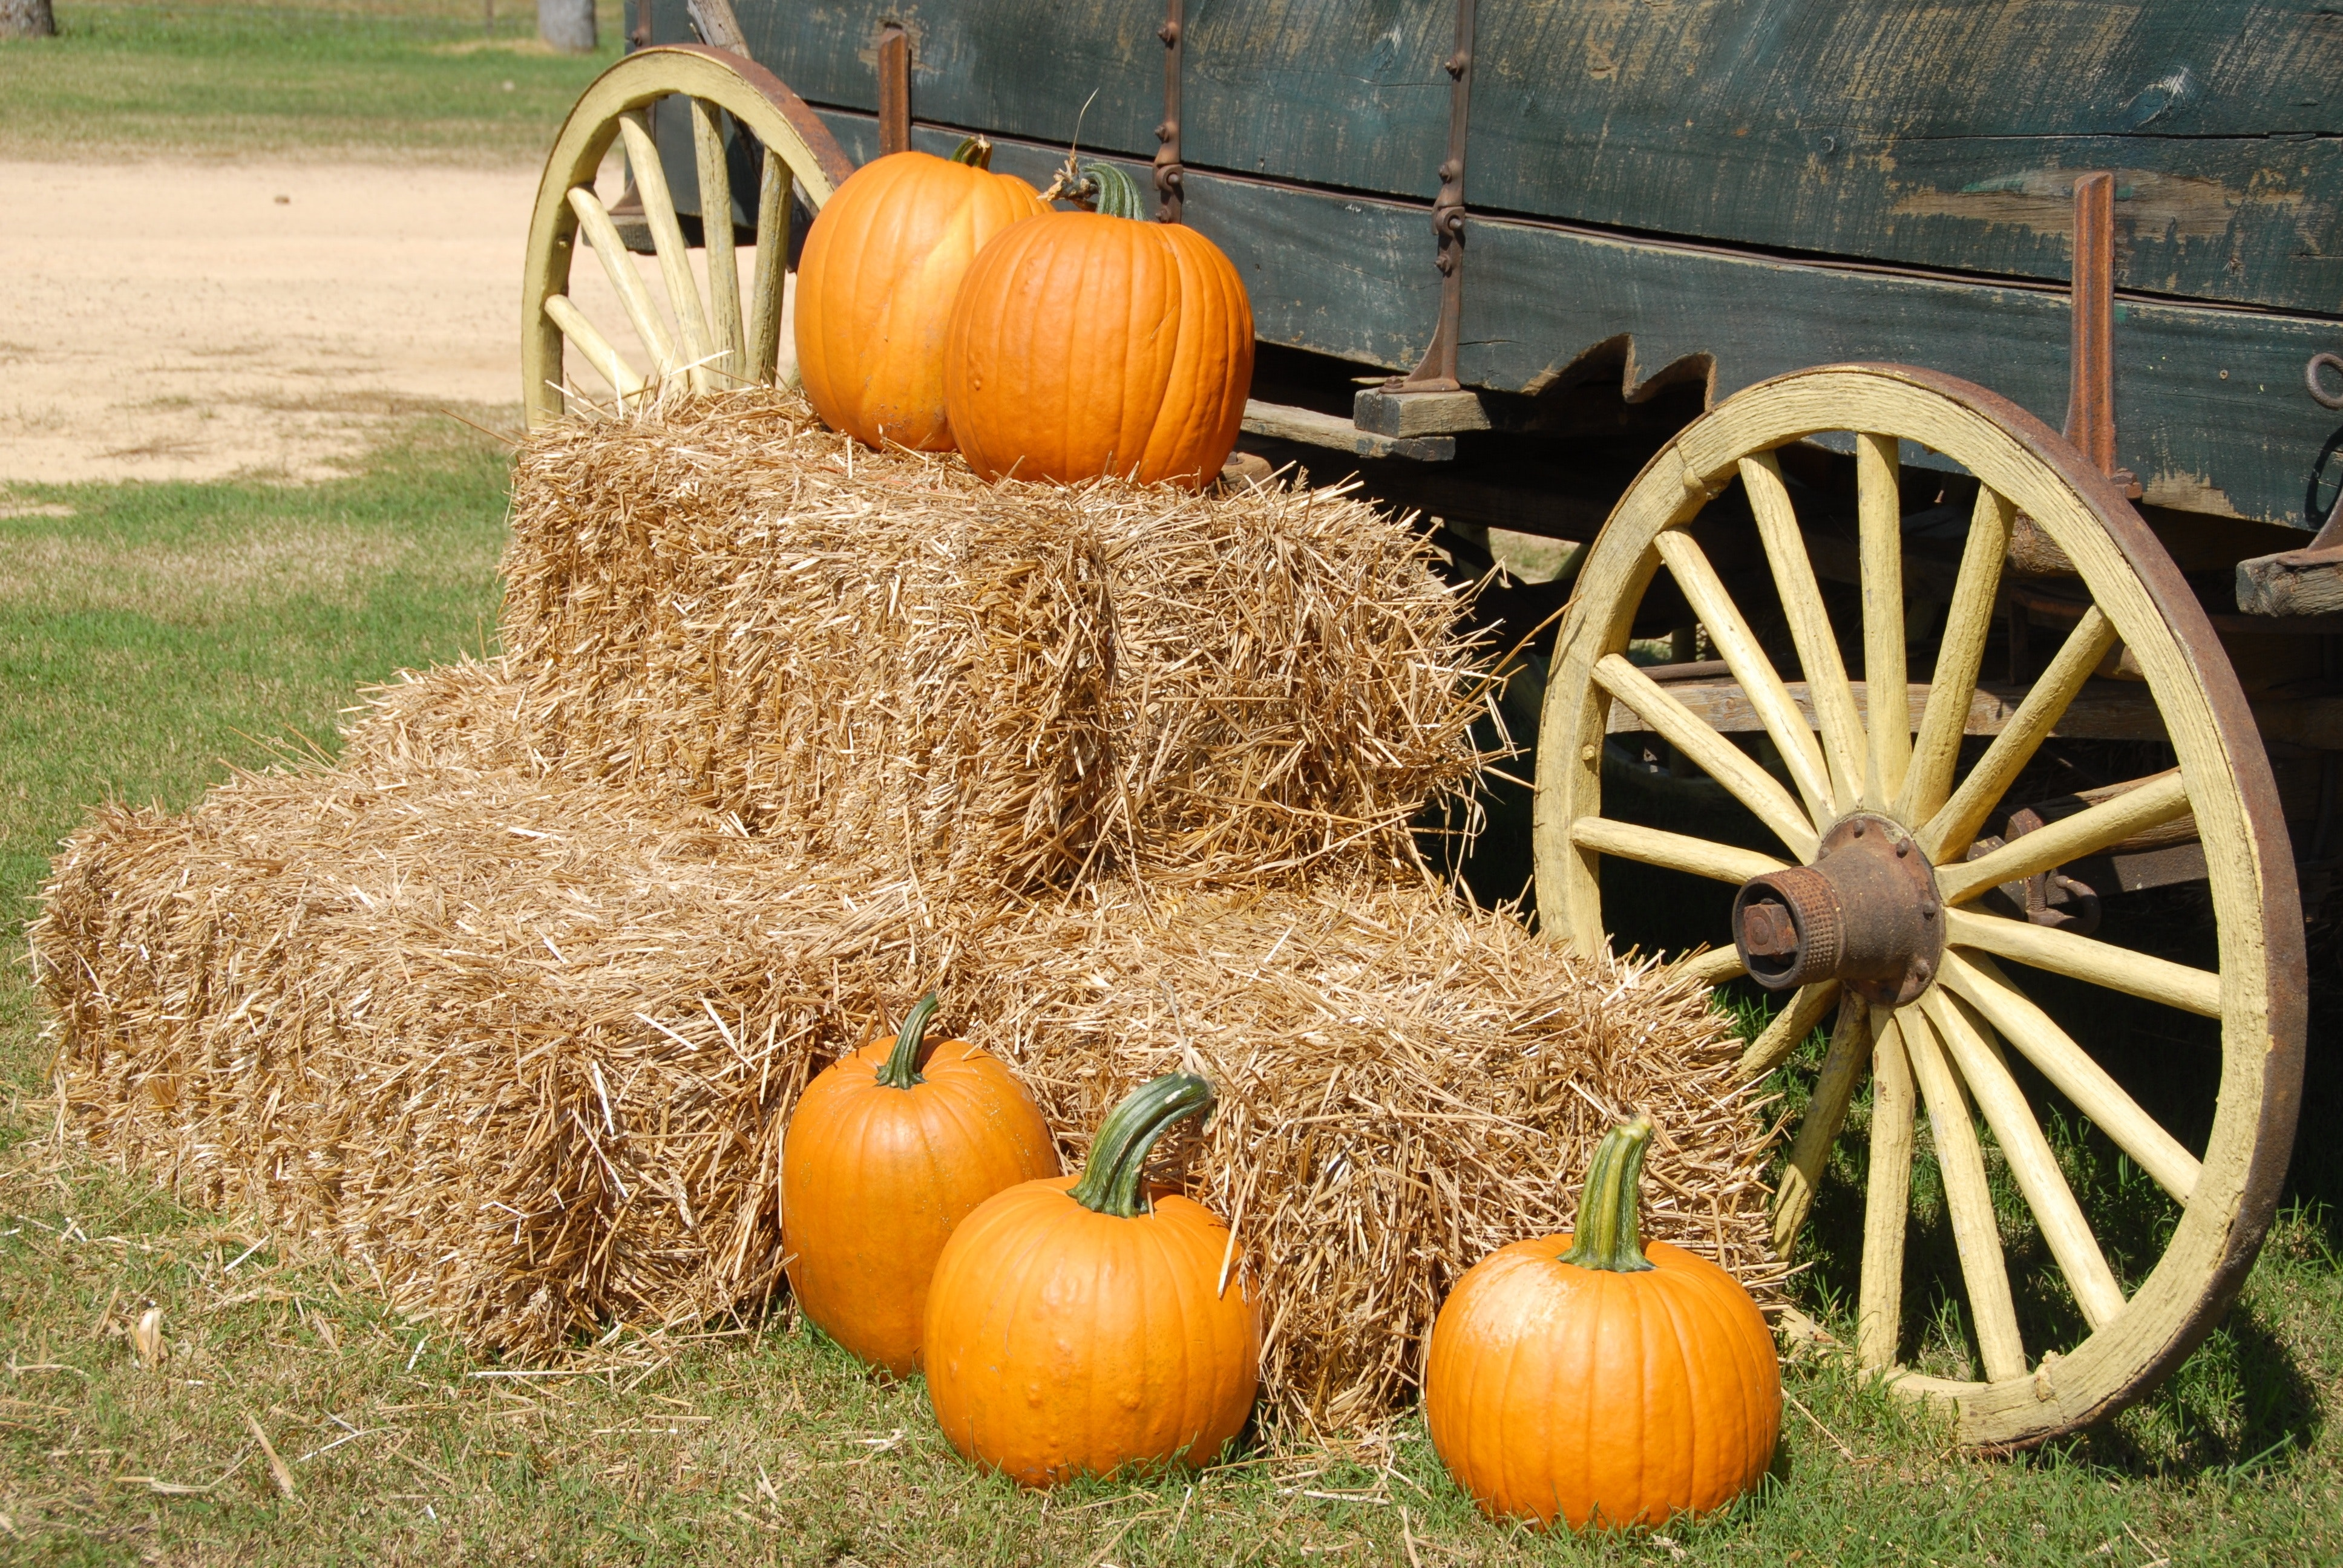 Orange pumpkin on brown hay near gray carriage photo